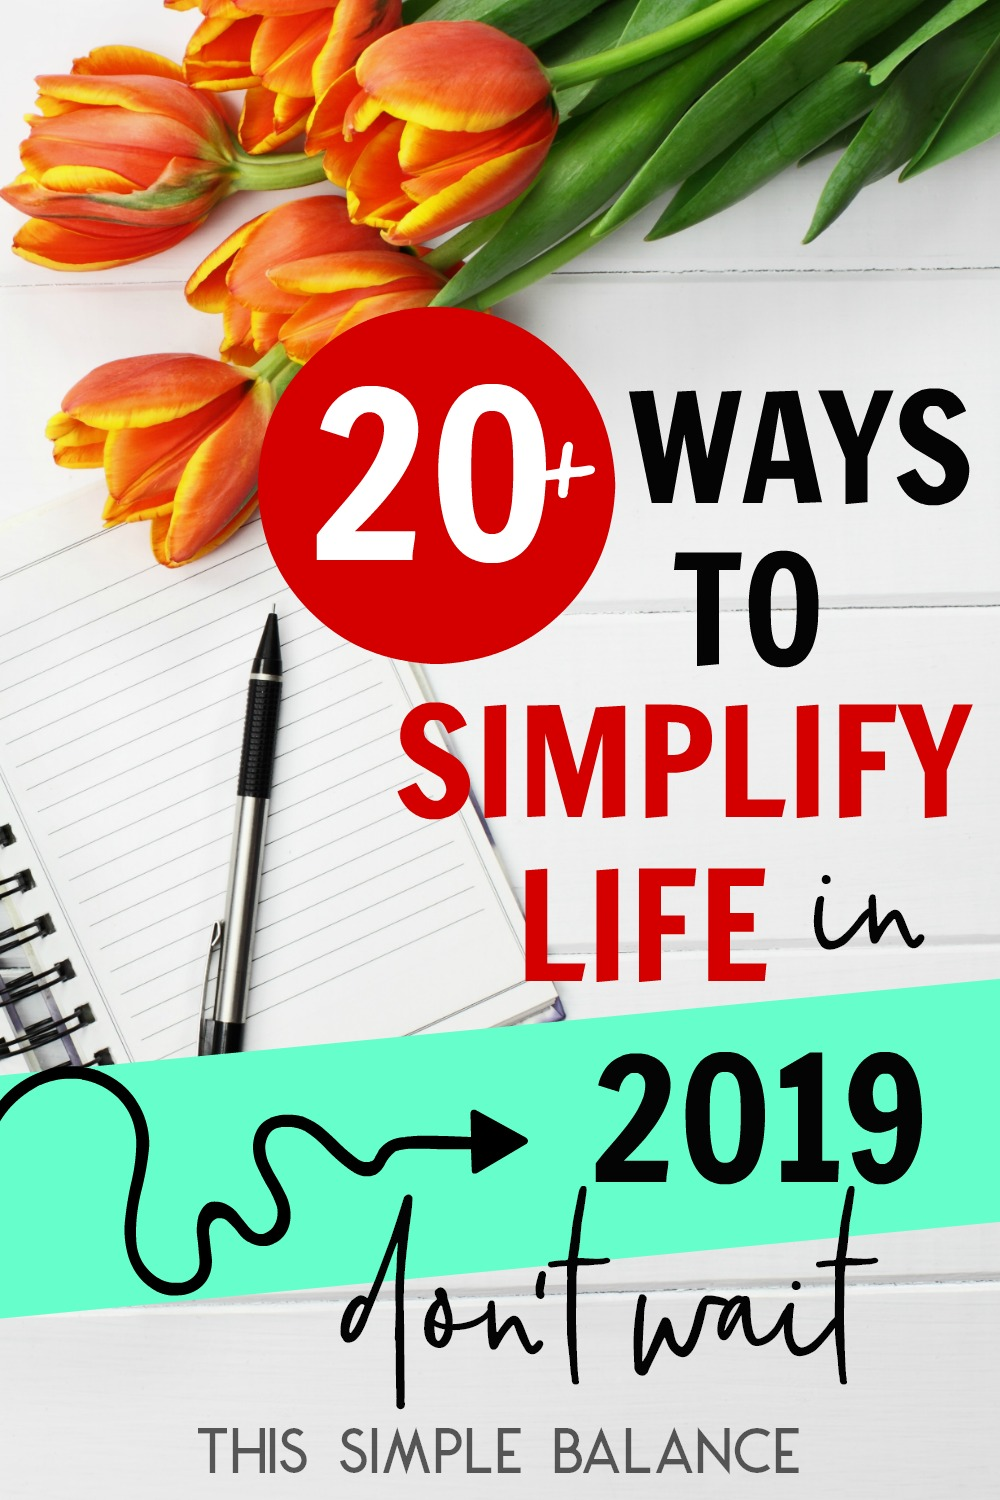 Looking to simplify life in 2019? Here are more than 20 ways to simplify your life, reduce stress, and make more time and energy for what matters most this year.